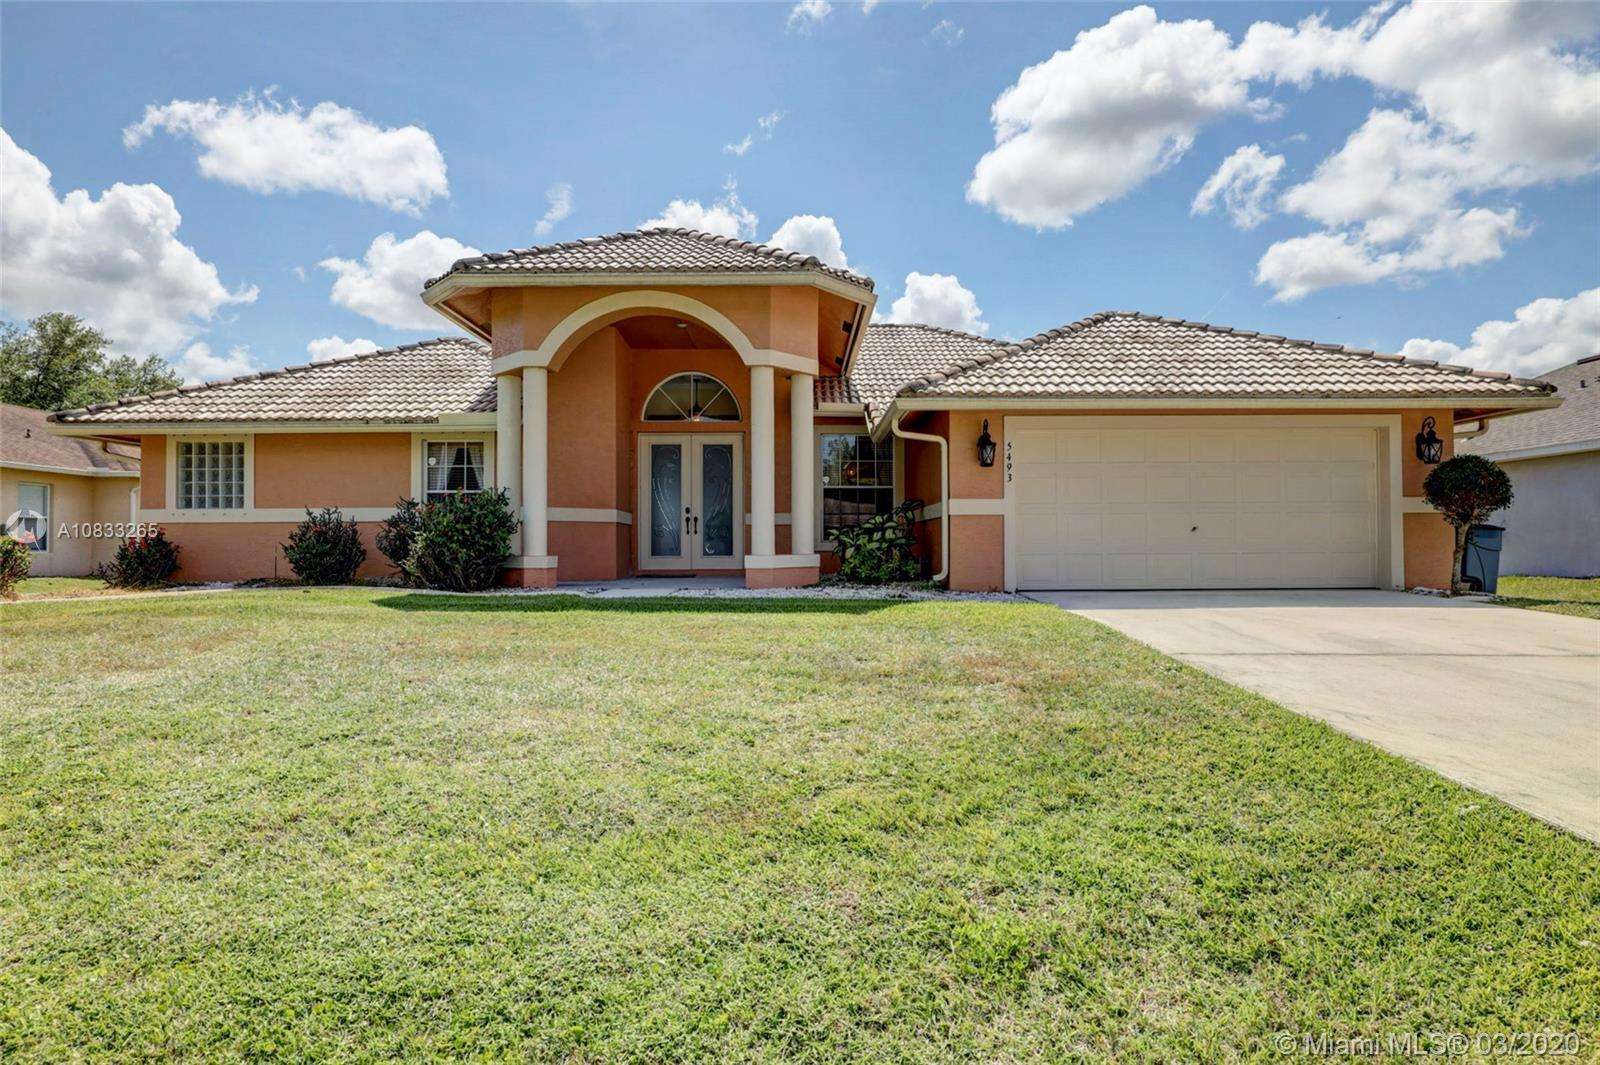 5493 NW Dabney Ct, Port St. Lucie, FL 34986